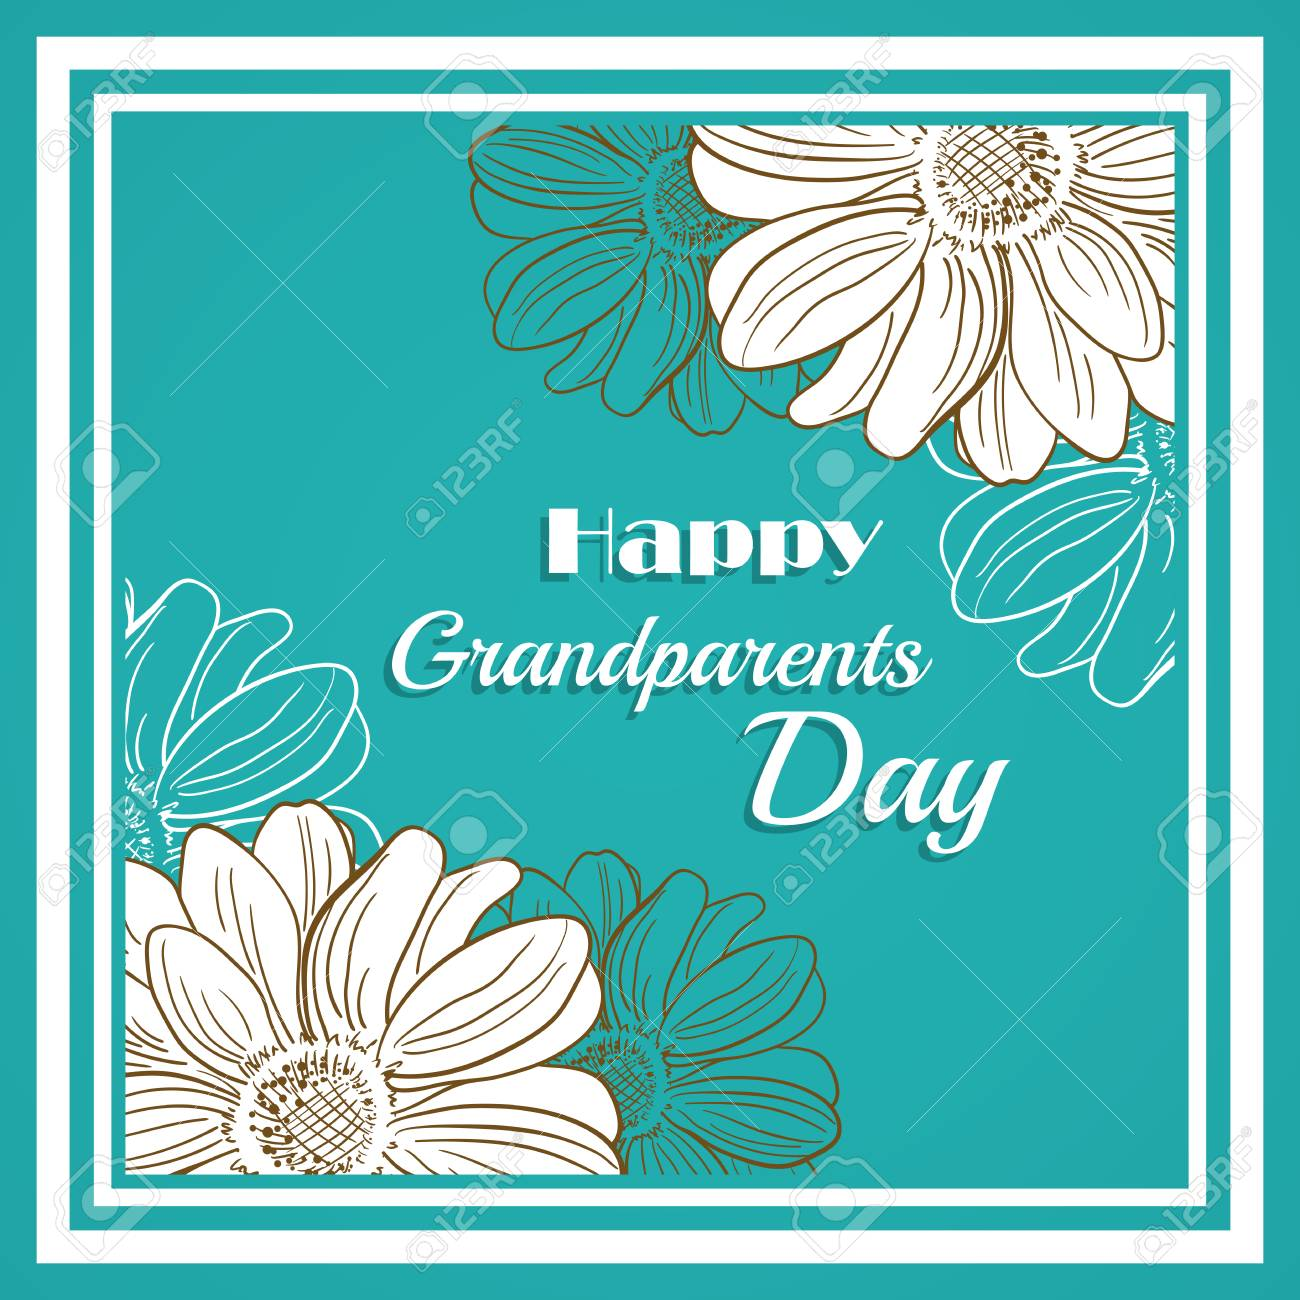 Greeting card for grandparents day royalty free cliparts vectors greeting card for grandparents day stock vector 84829148 m4hsunfo